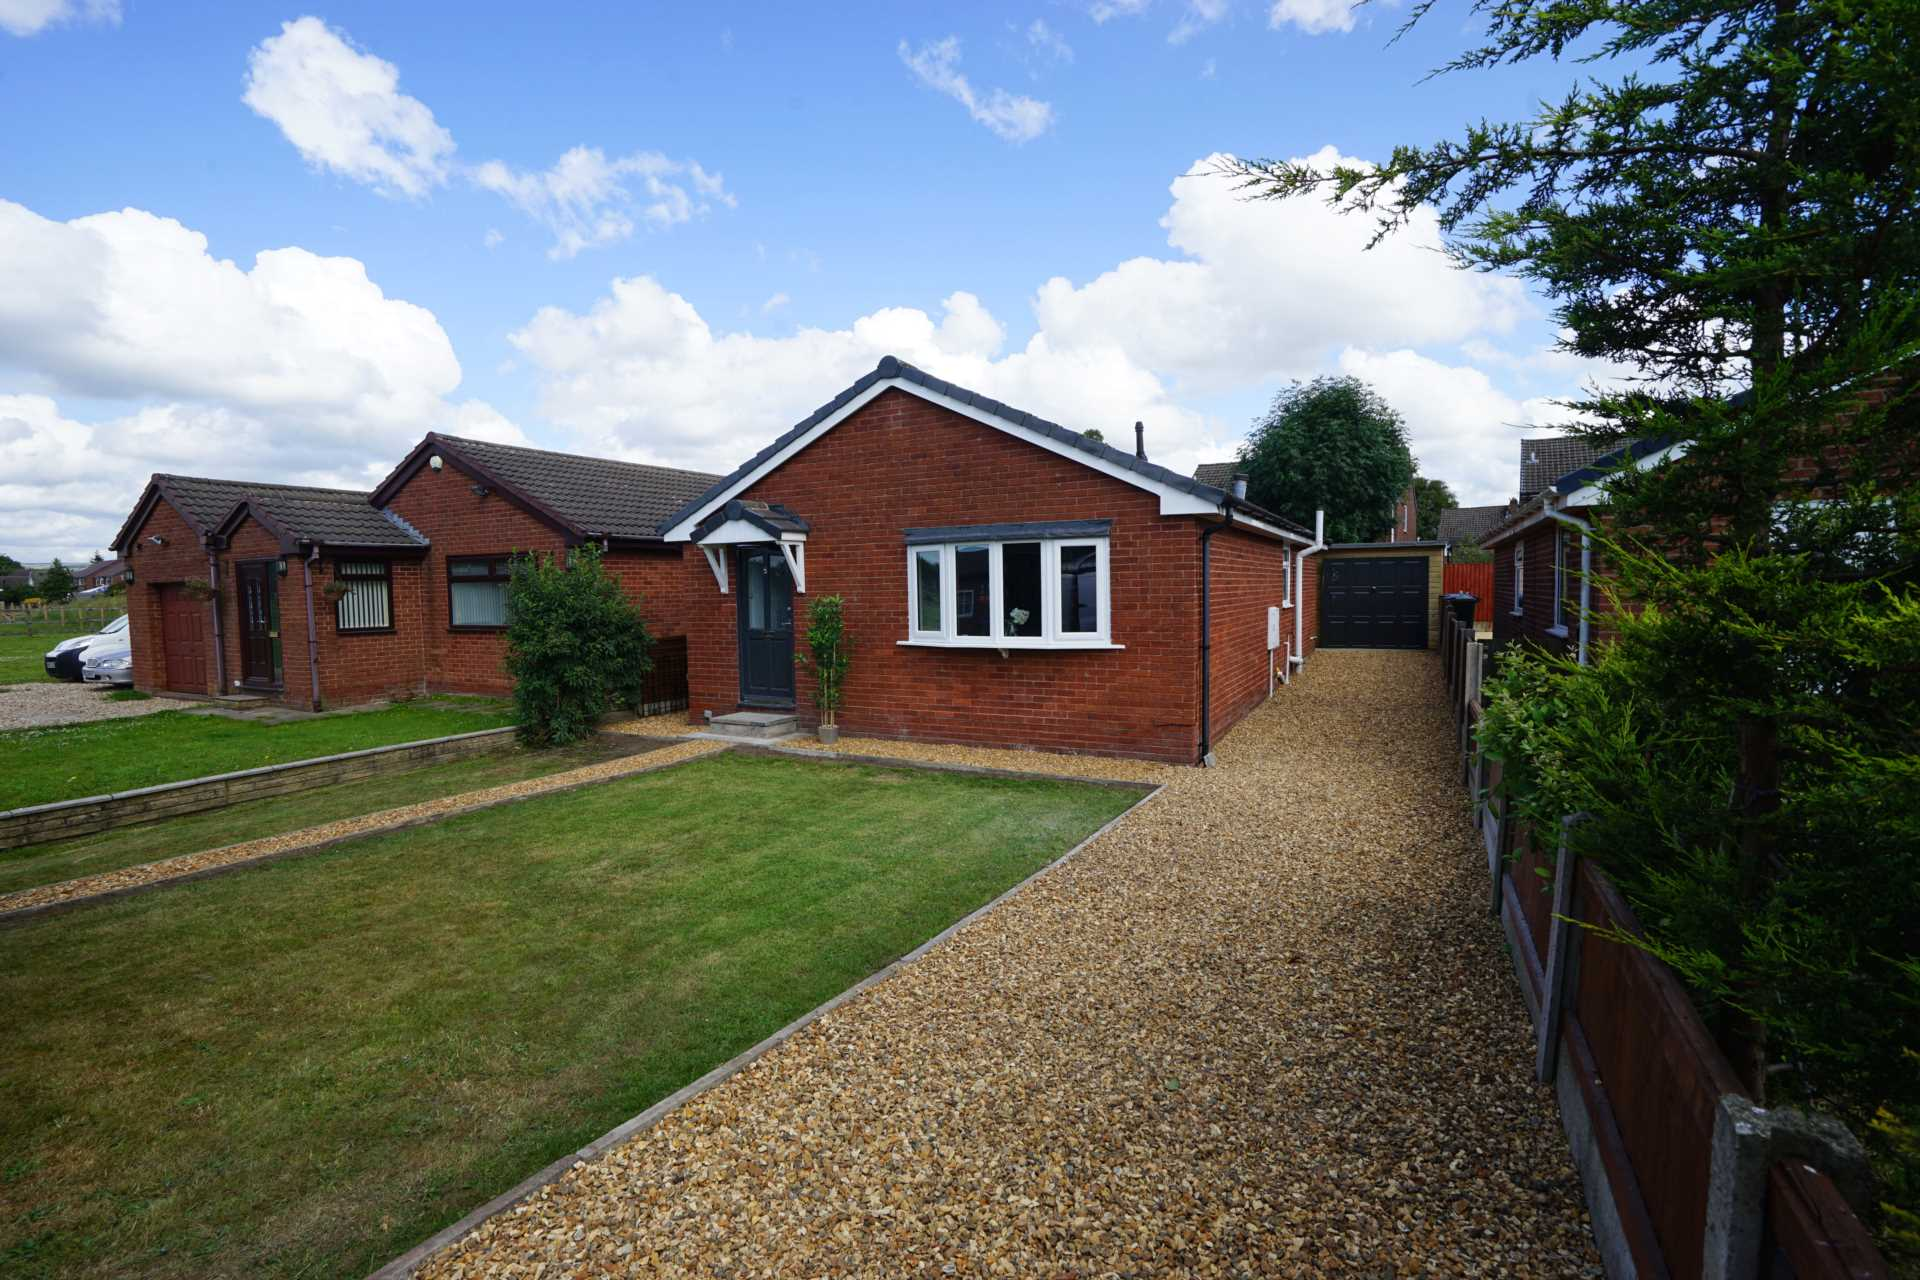 Redman Casey Estate Agency - 2 Bedroom Detached Bungalow, Sandringham Close, Adlington